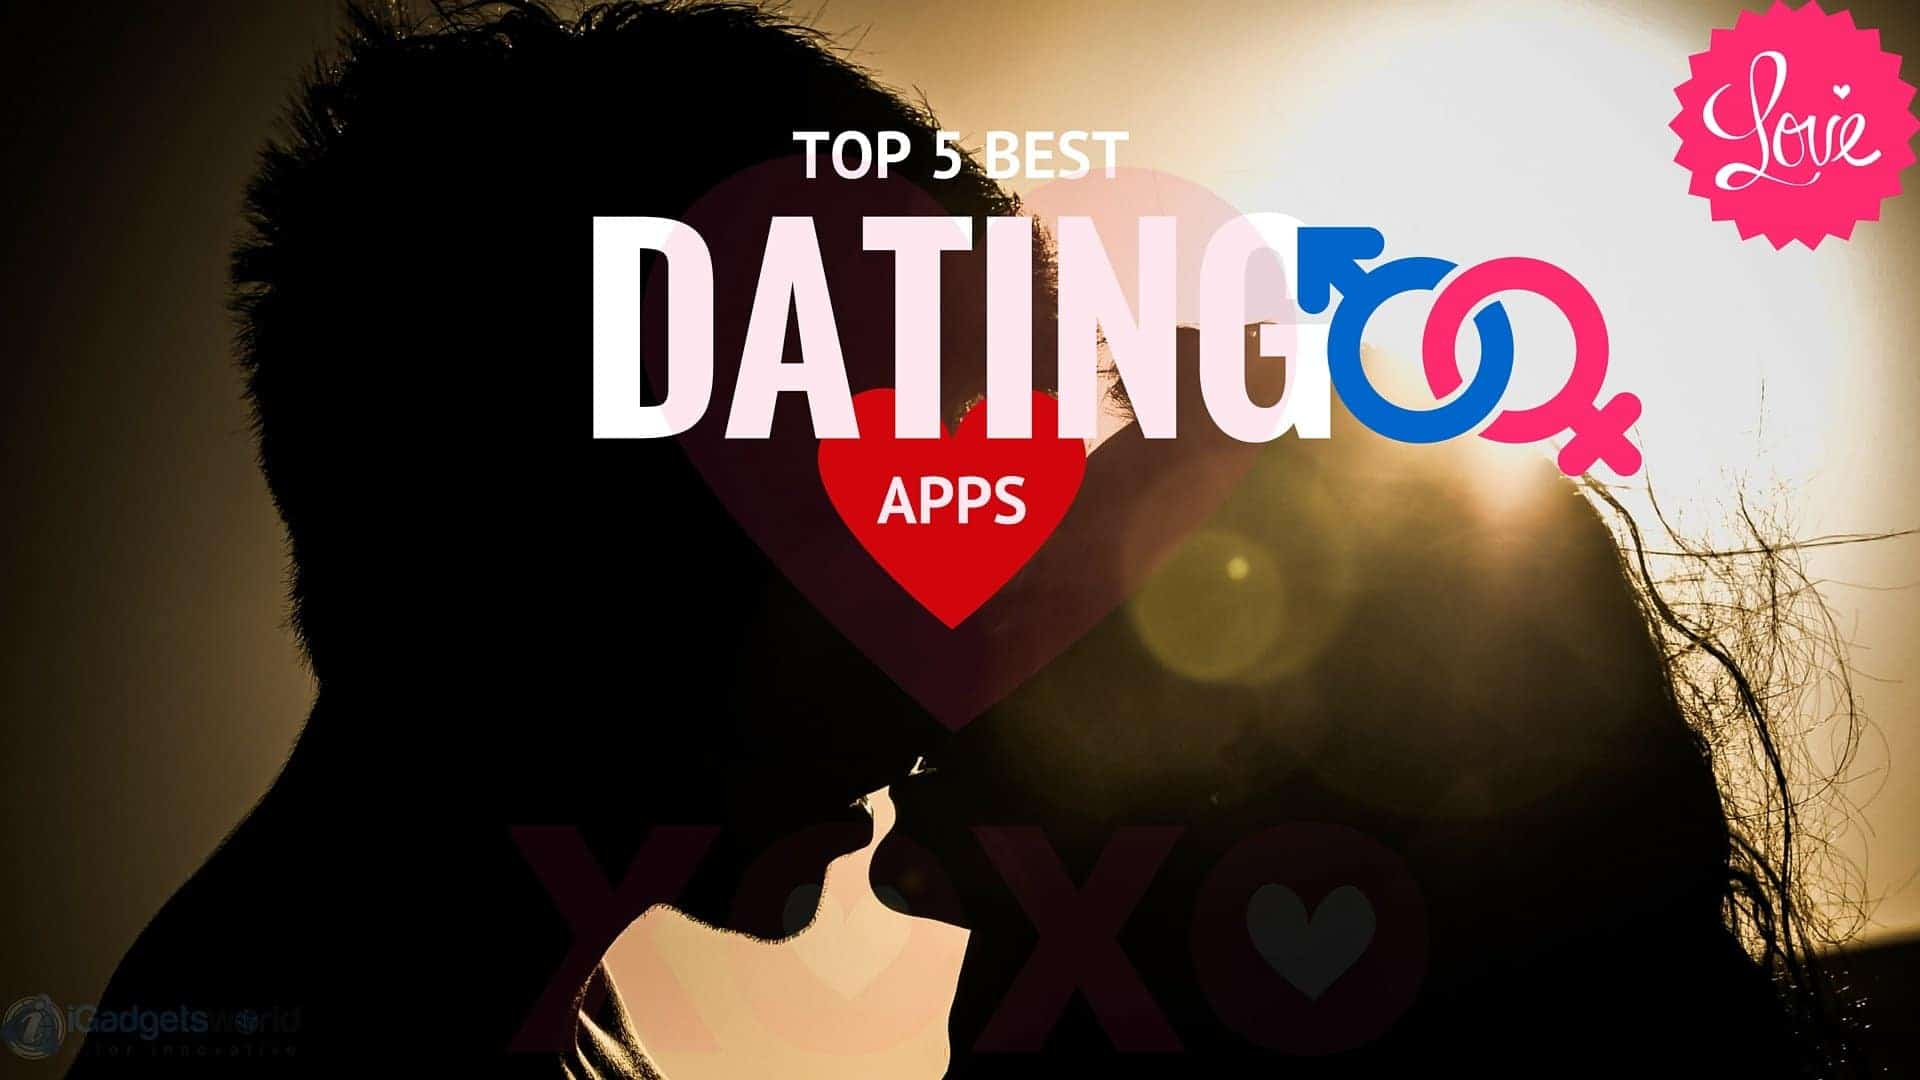 Top 5 dating apps in dubai